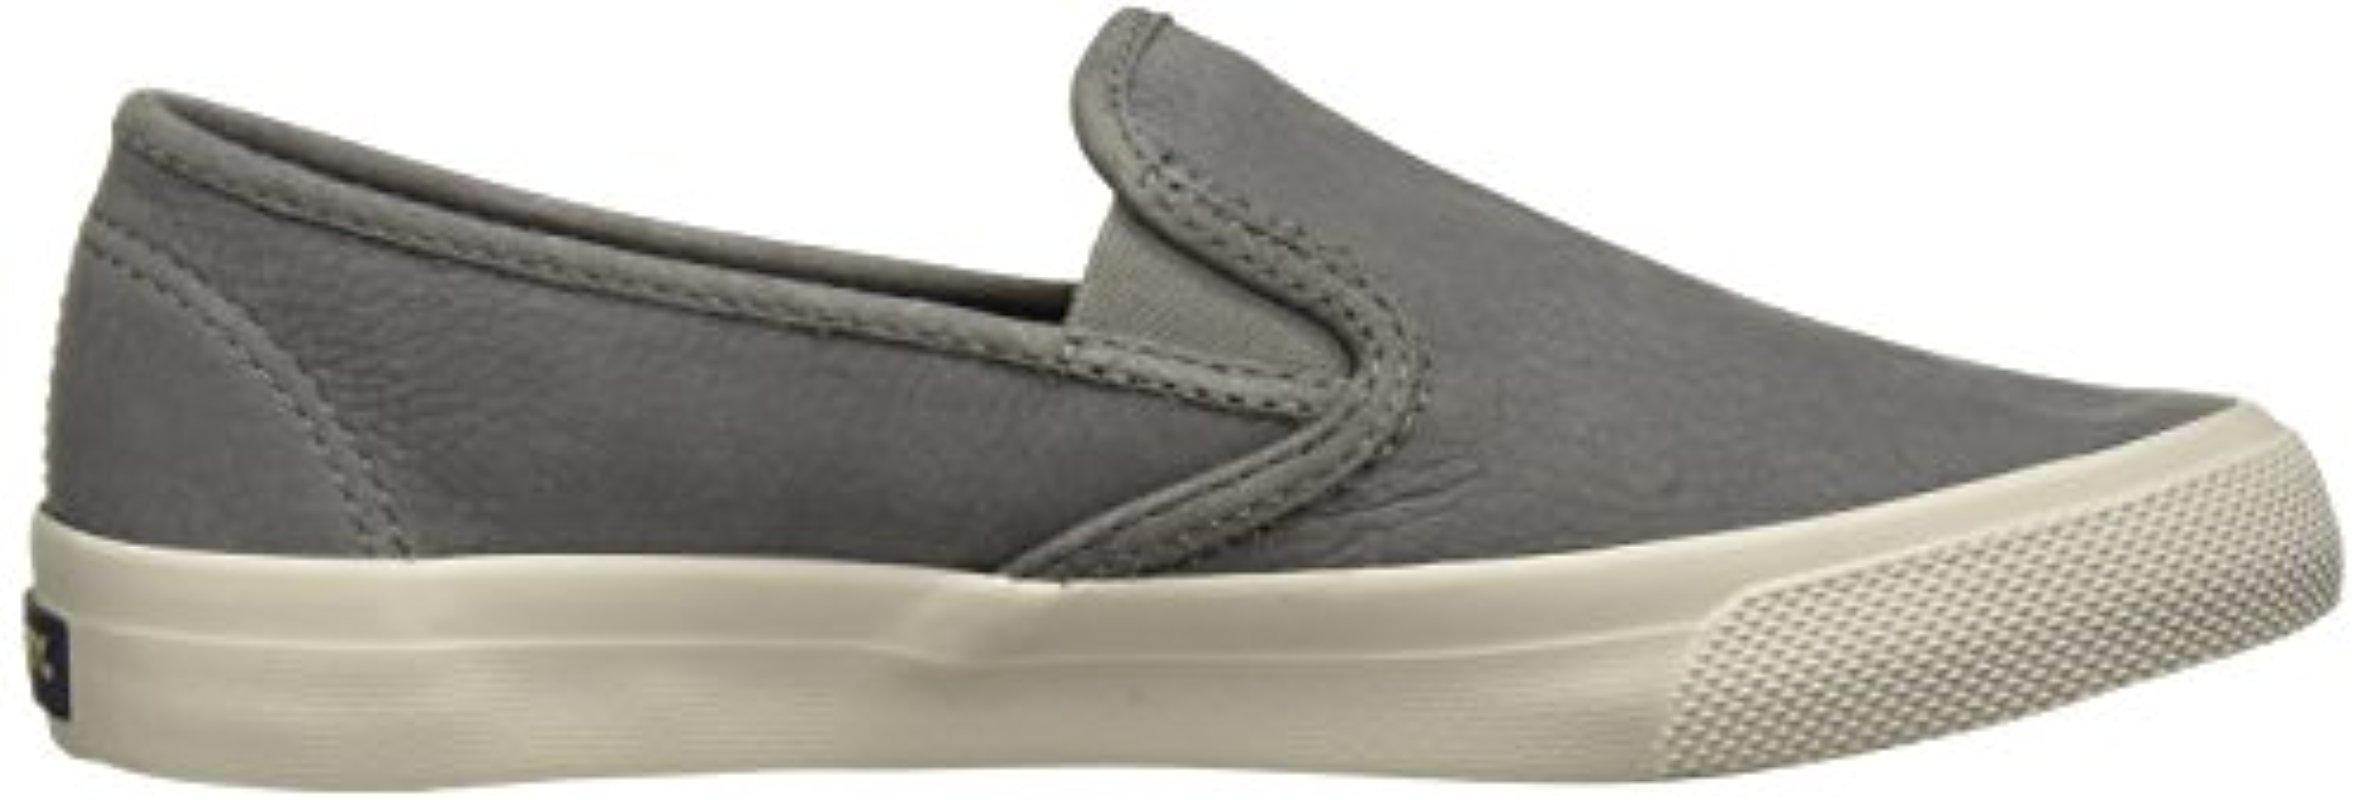 Sperry Top-Sider Seaside Washable